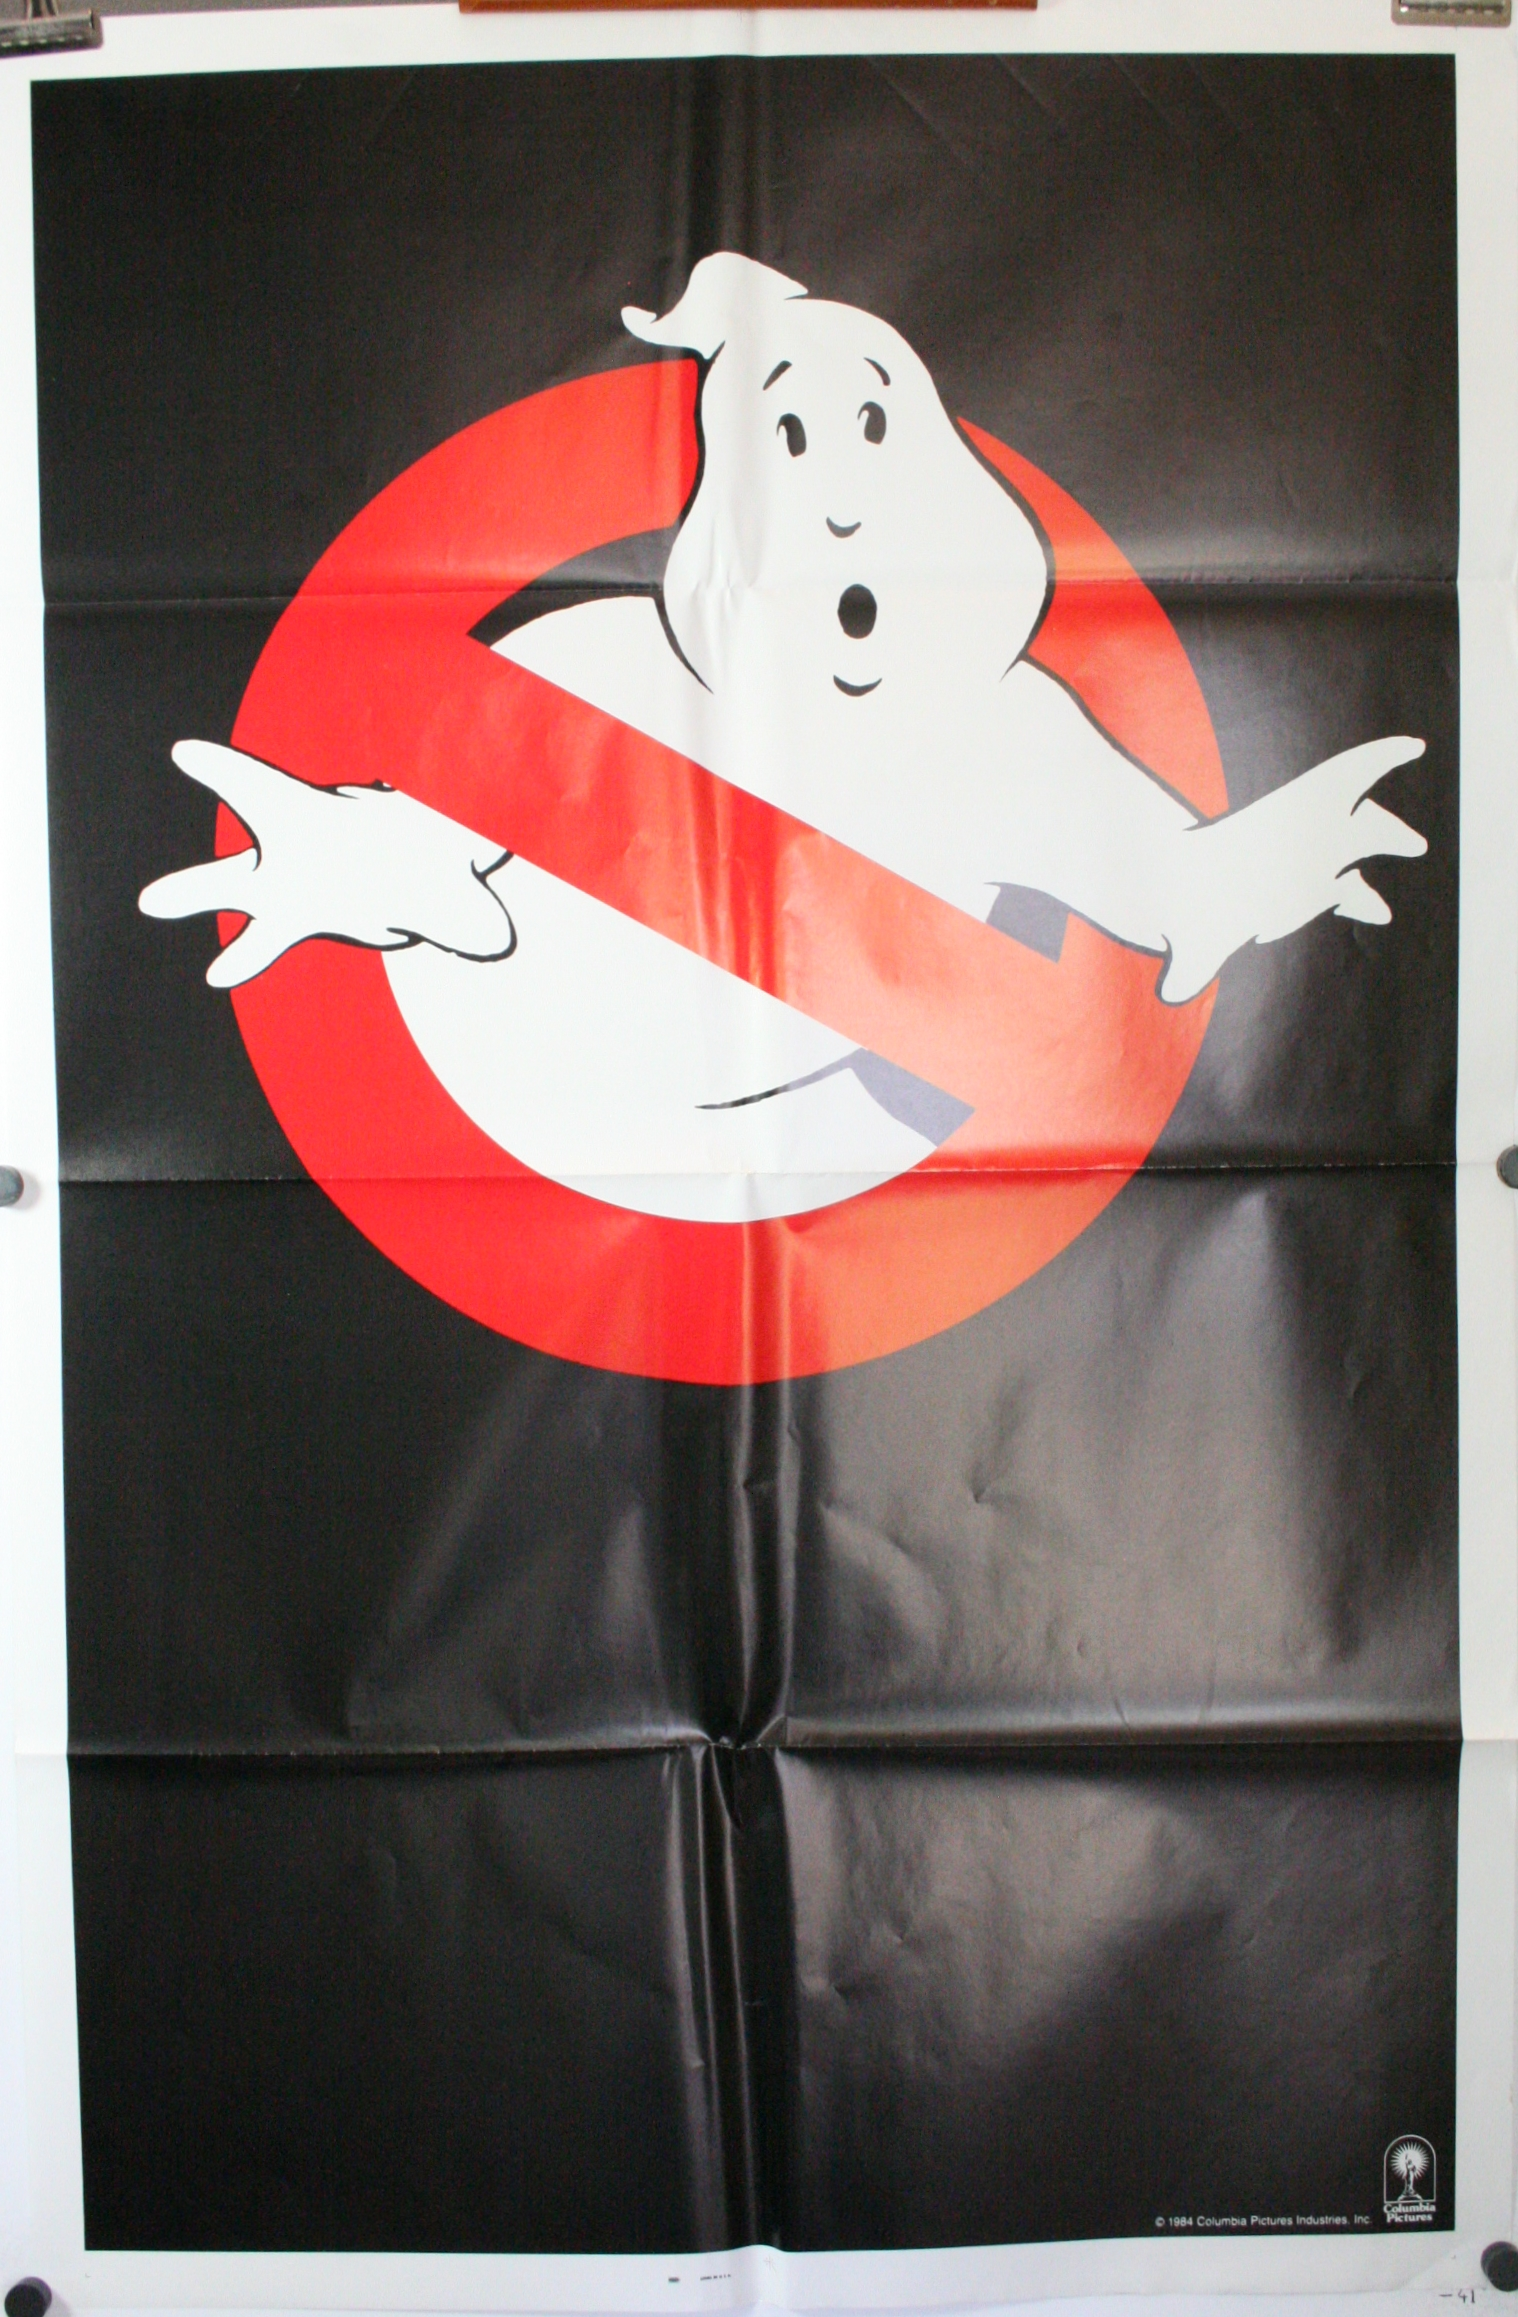 Ghostbusters Original Advance Teaser Movie Theater Poster For Sale